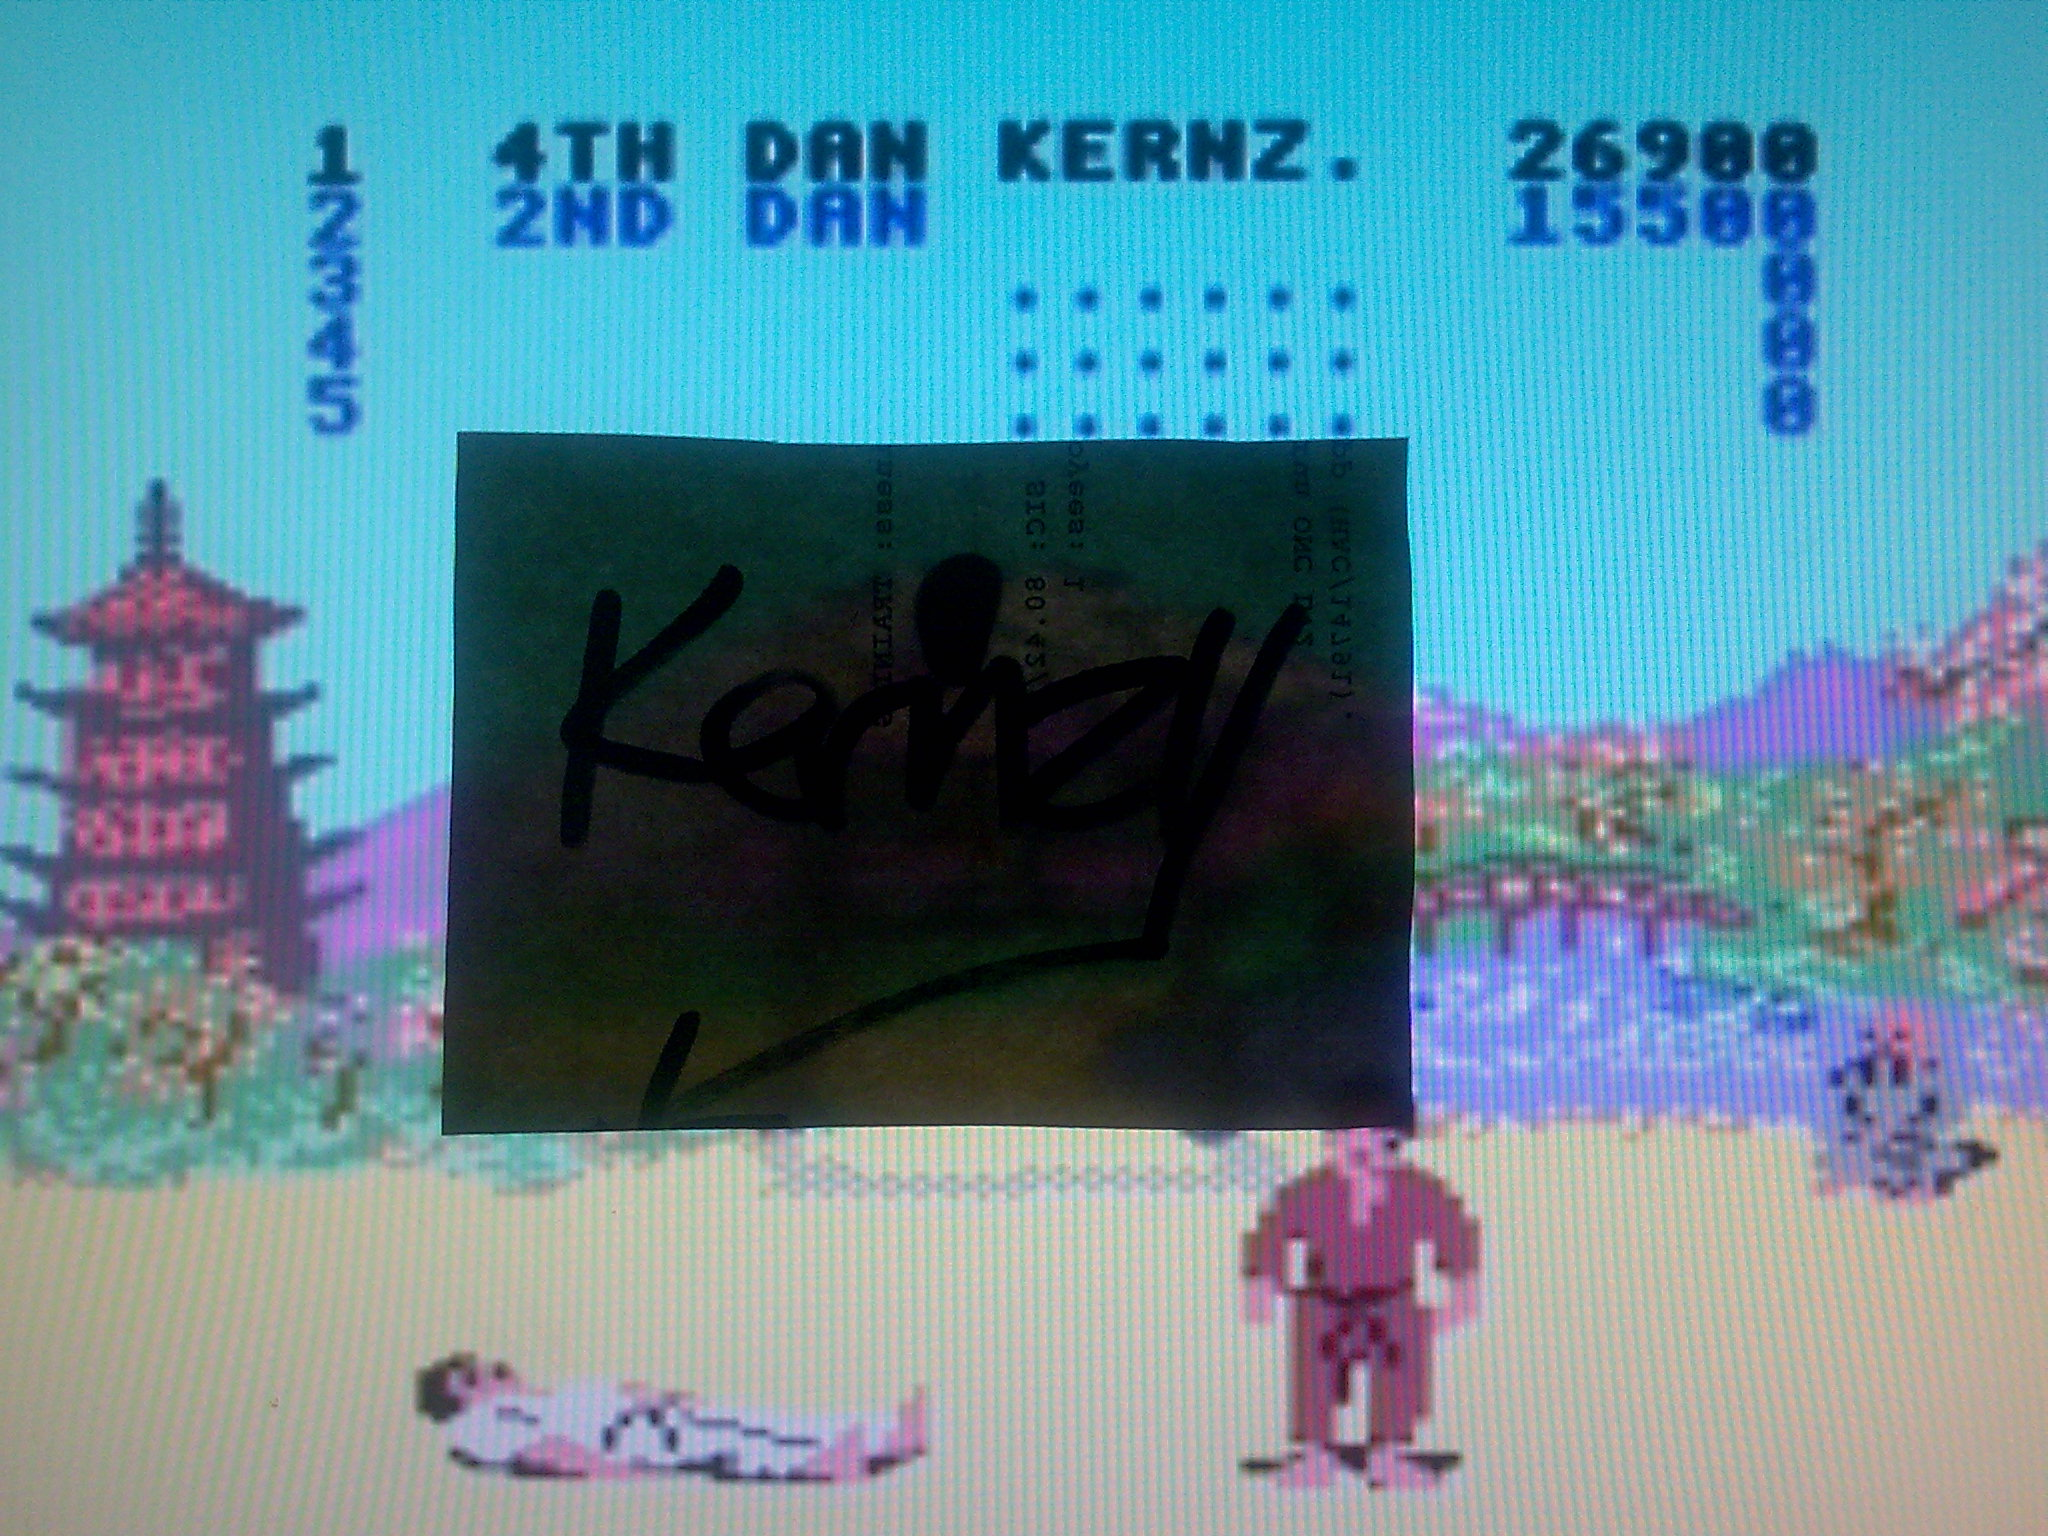 kernzy: Way of the Exploding Fist (Commodore 64 Emulated) 26,900 points on 2014-08-26 12:16:49